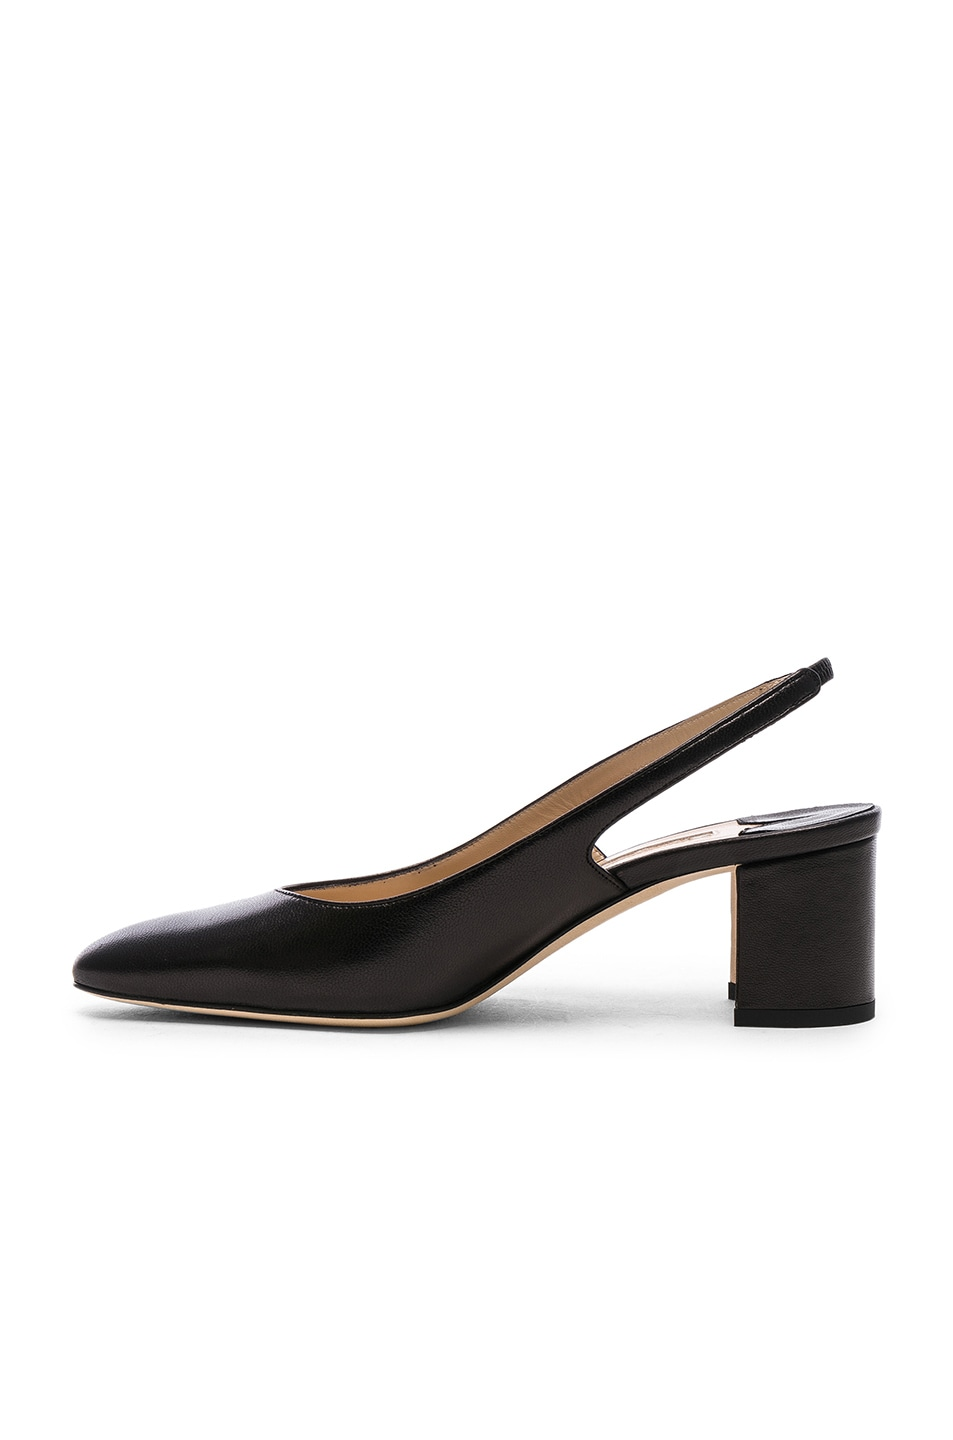 Image 5 of Manolo Blahnik Leather Allurasa 50 Heels in Black Nappa